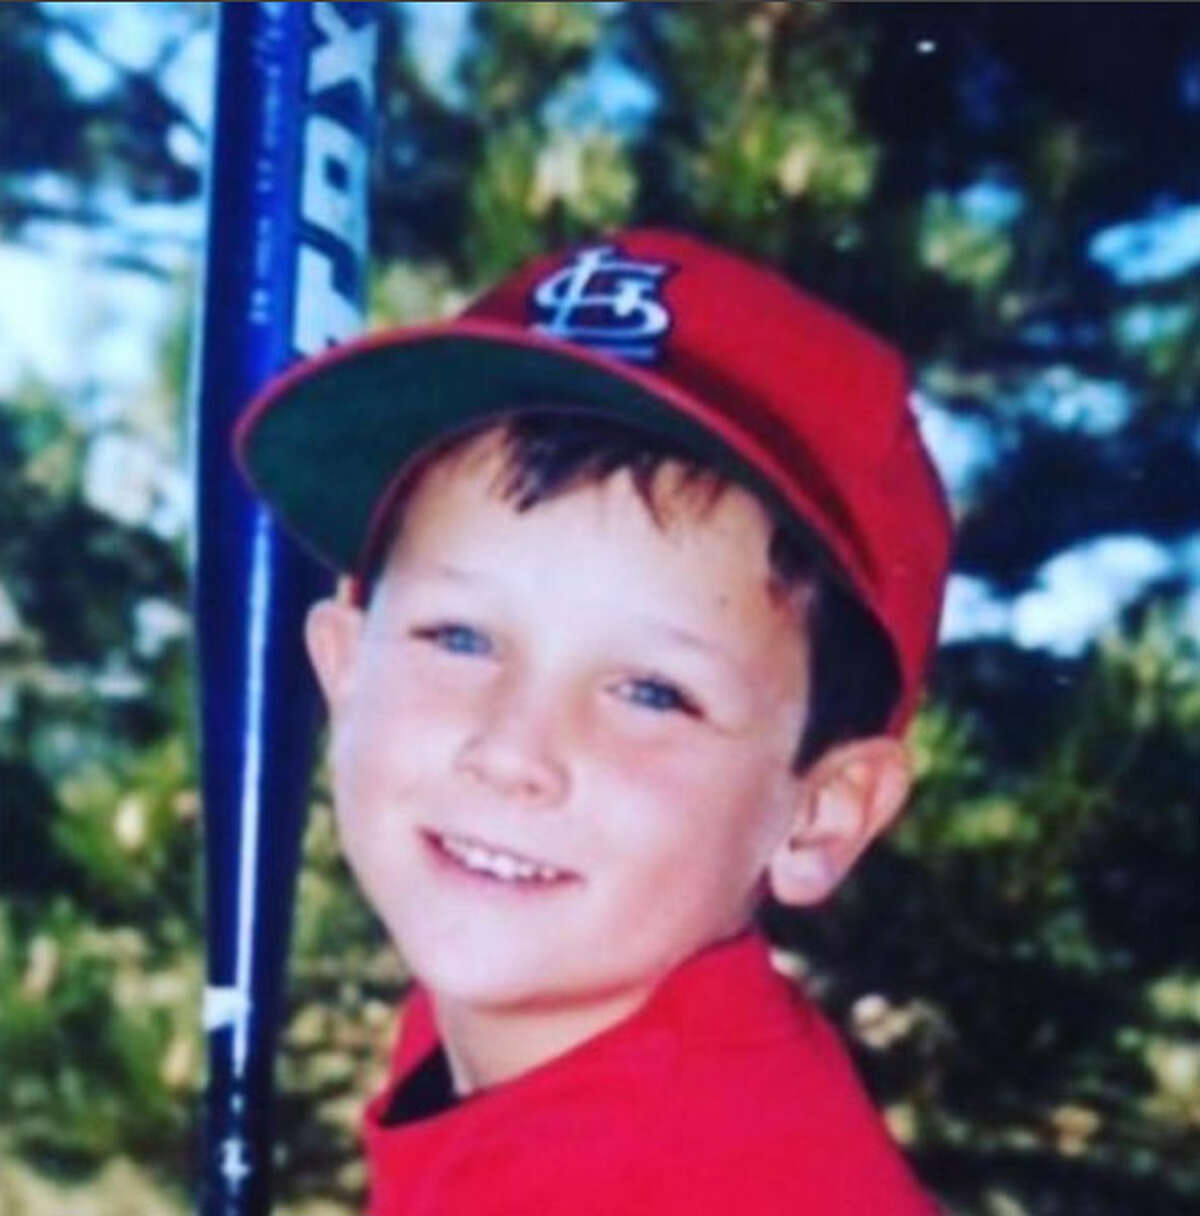 He started his baseball career when he was just four years old. His family says that during his first tee-ball game he turned an unassisted triple play. The Astros are waiting for him to make an encore.